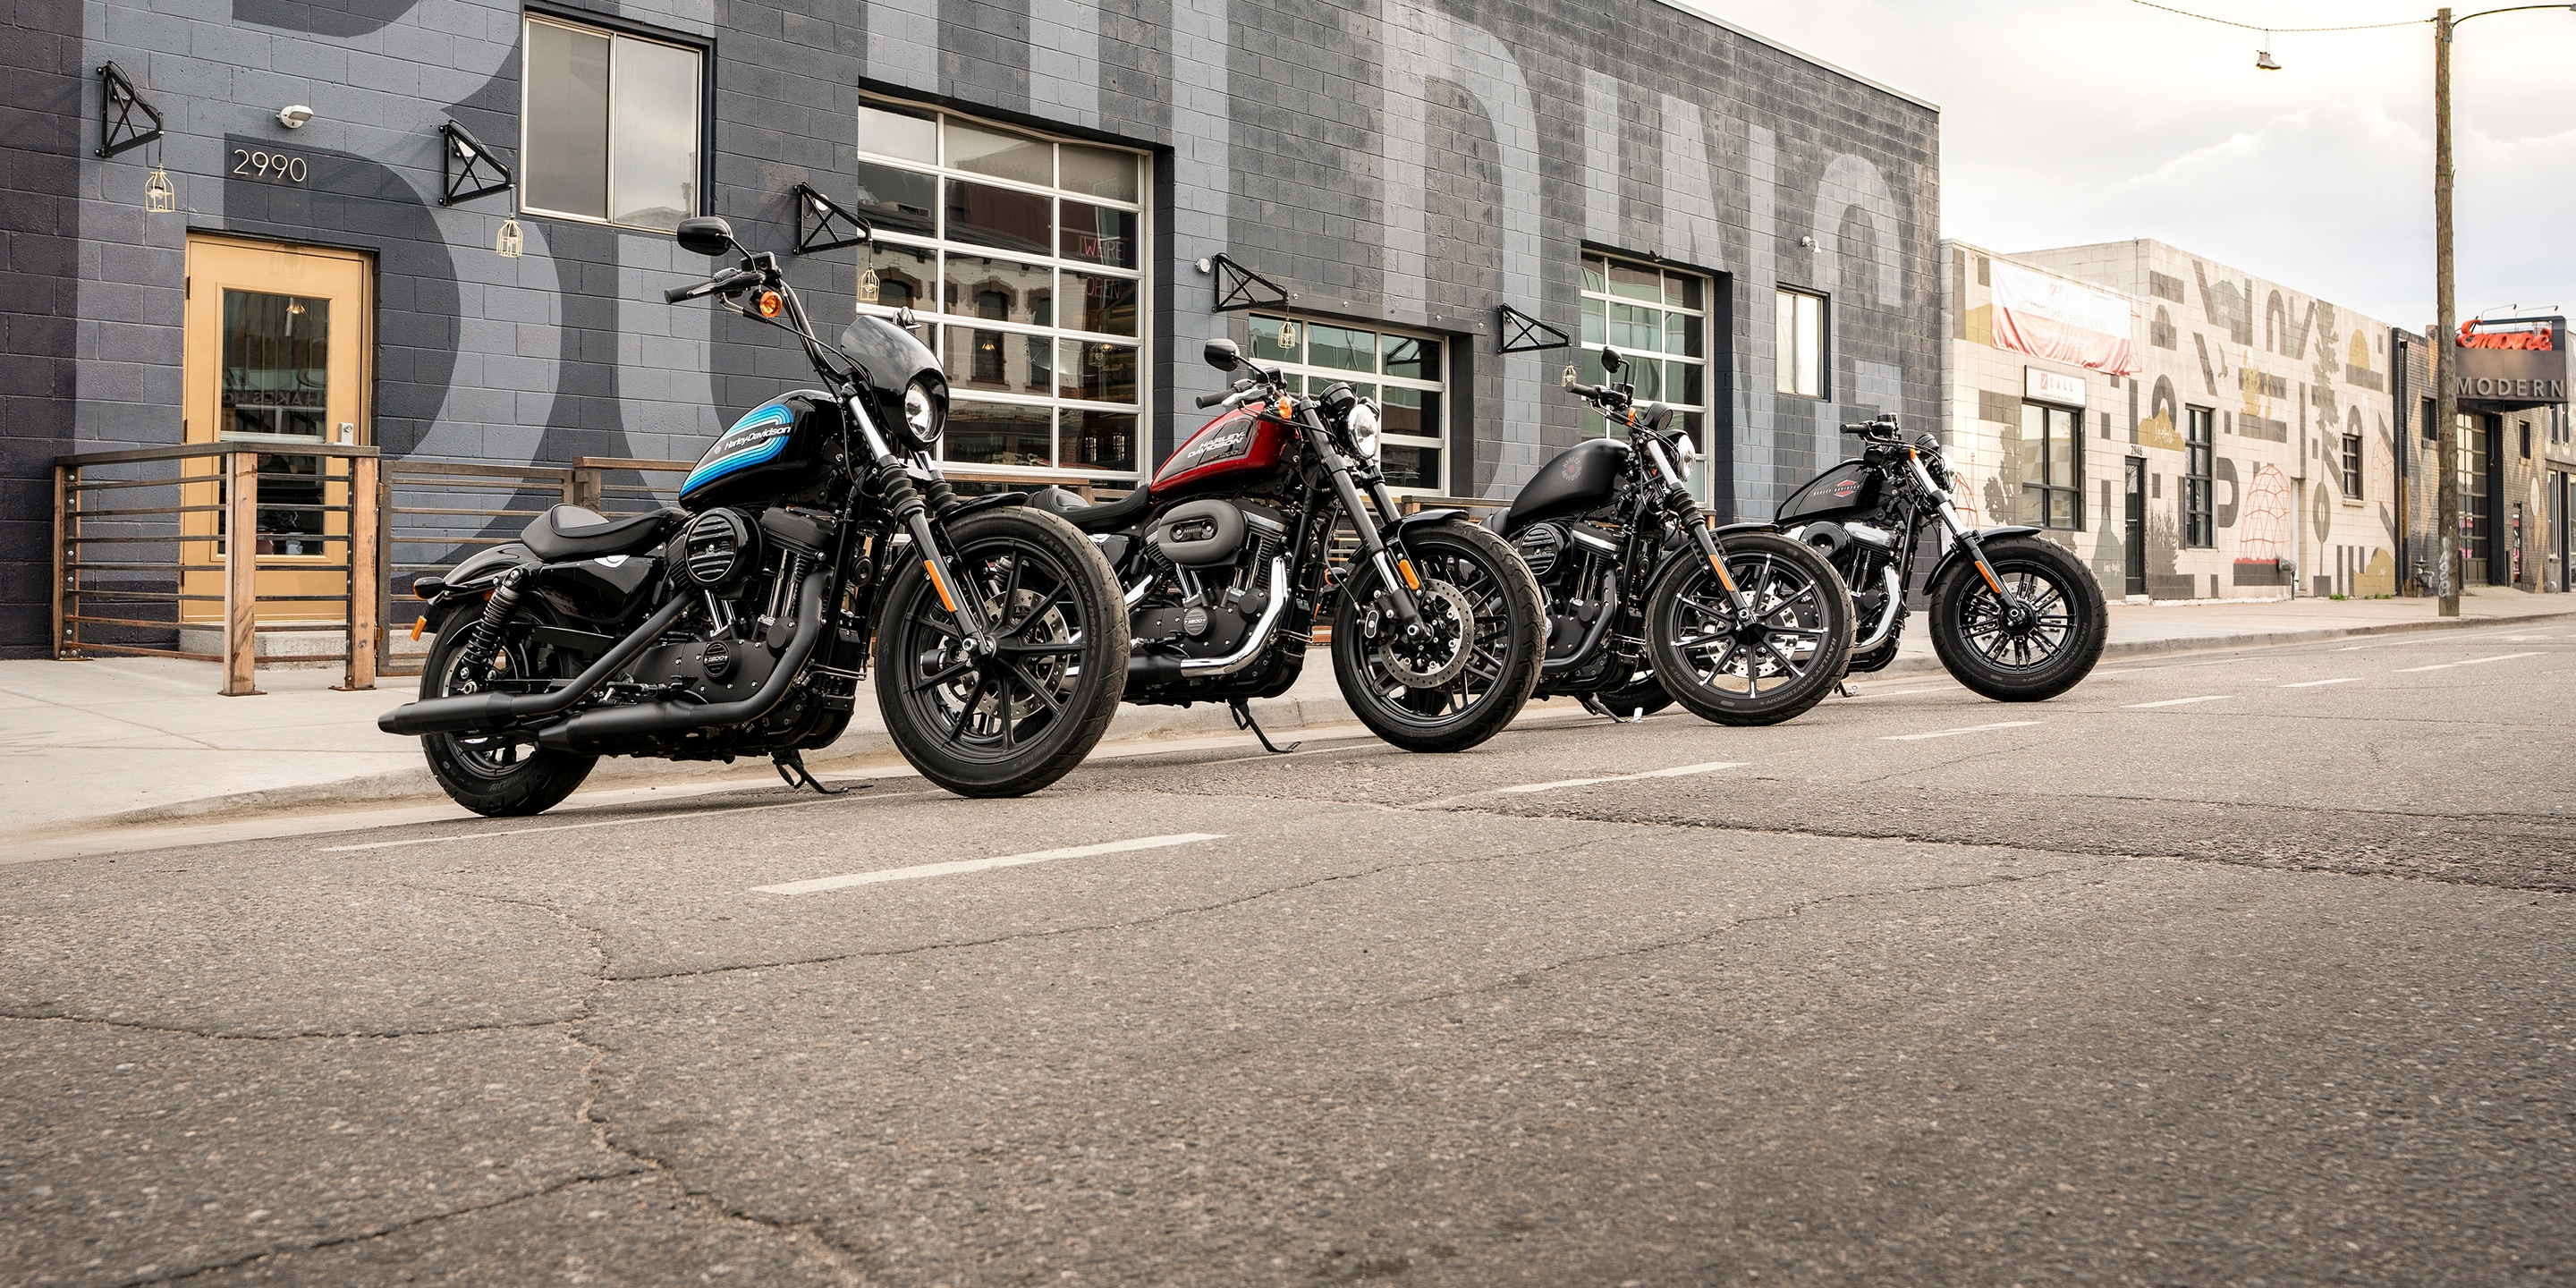 2019 H-D Sportster Motorcycles parked in front of a building